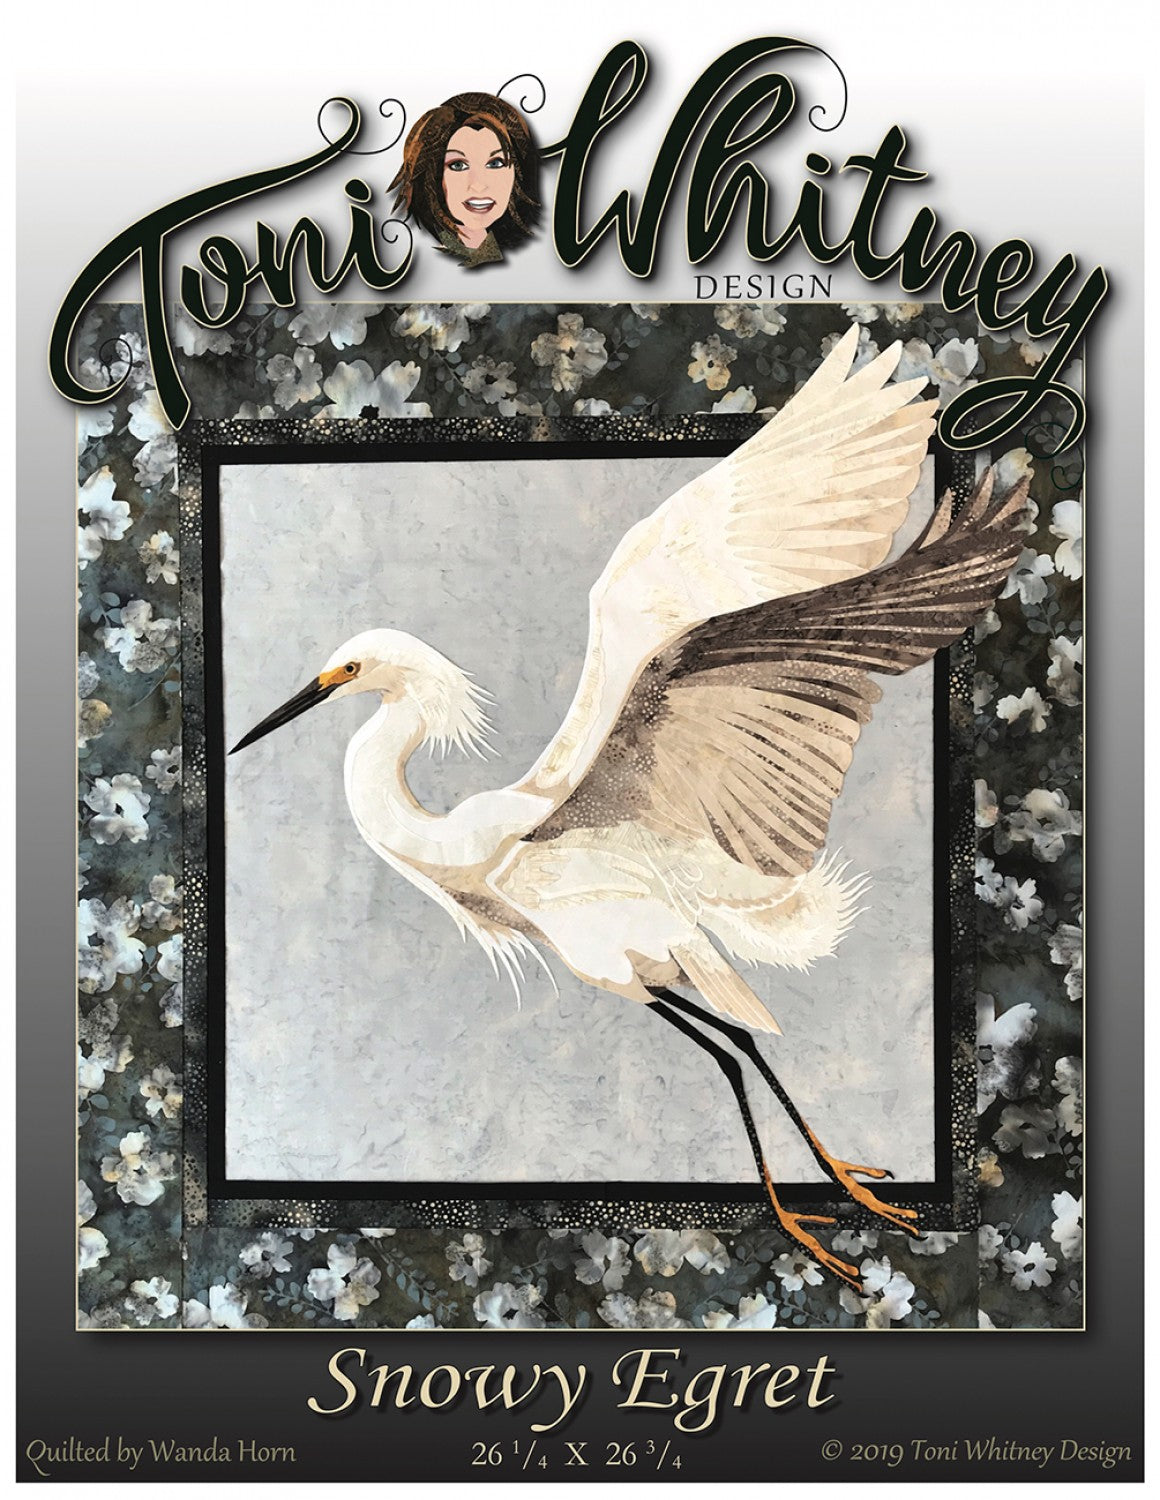 Toni Whitney Design Snowy Egret Bird Applique Quilt Pattern Front Cover